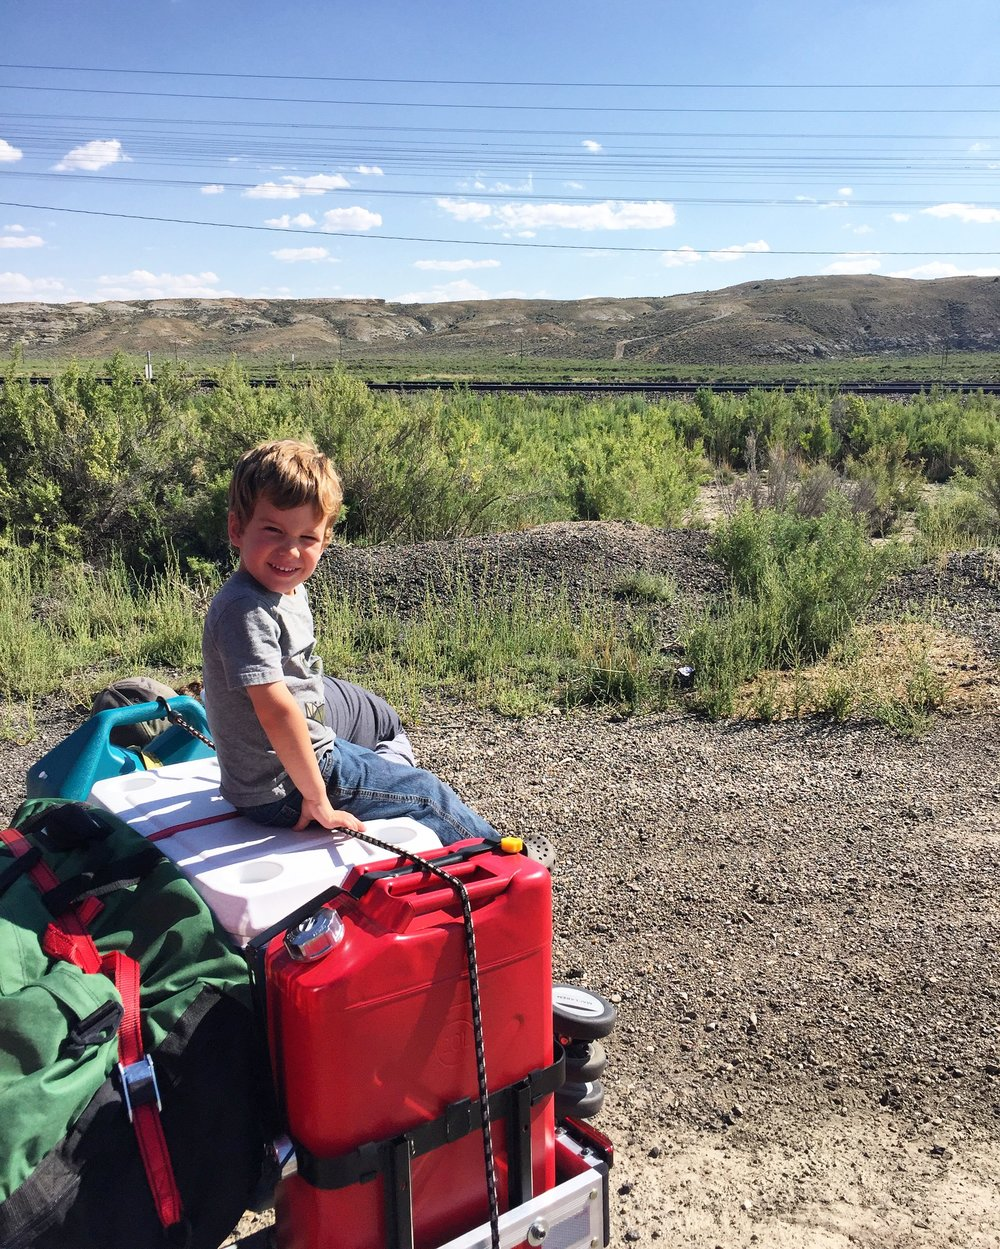 road-trip-with-kids-wyoming-thecuriosityprojectblog-IMG_9128.JPG